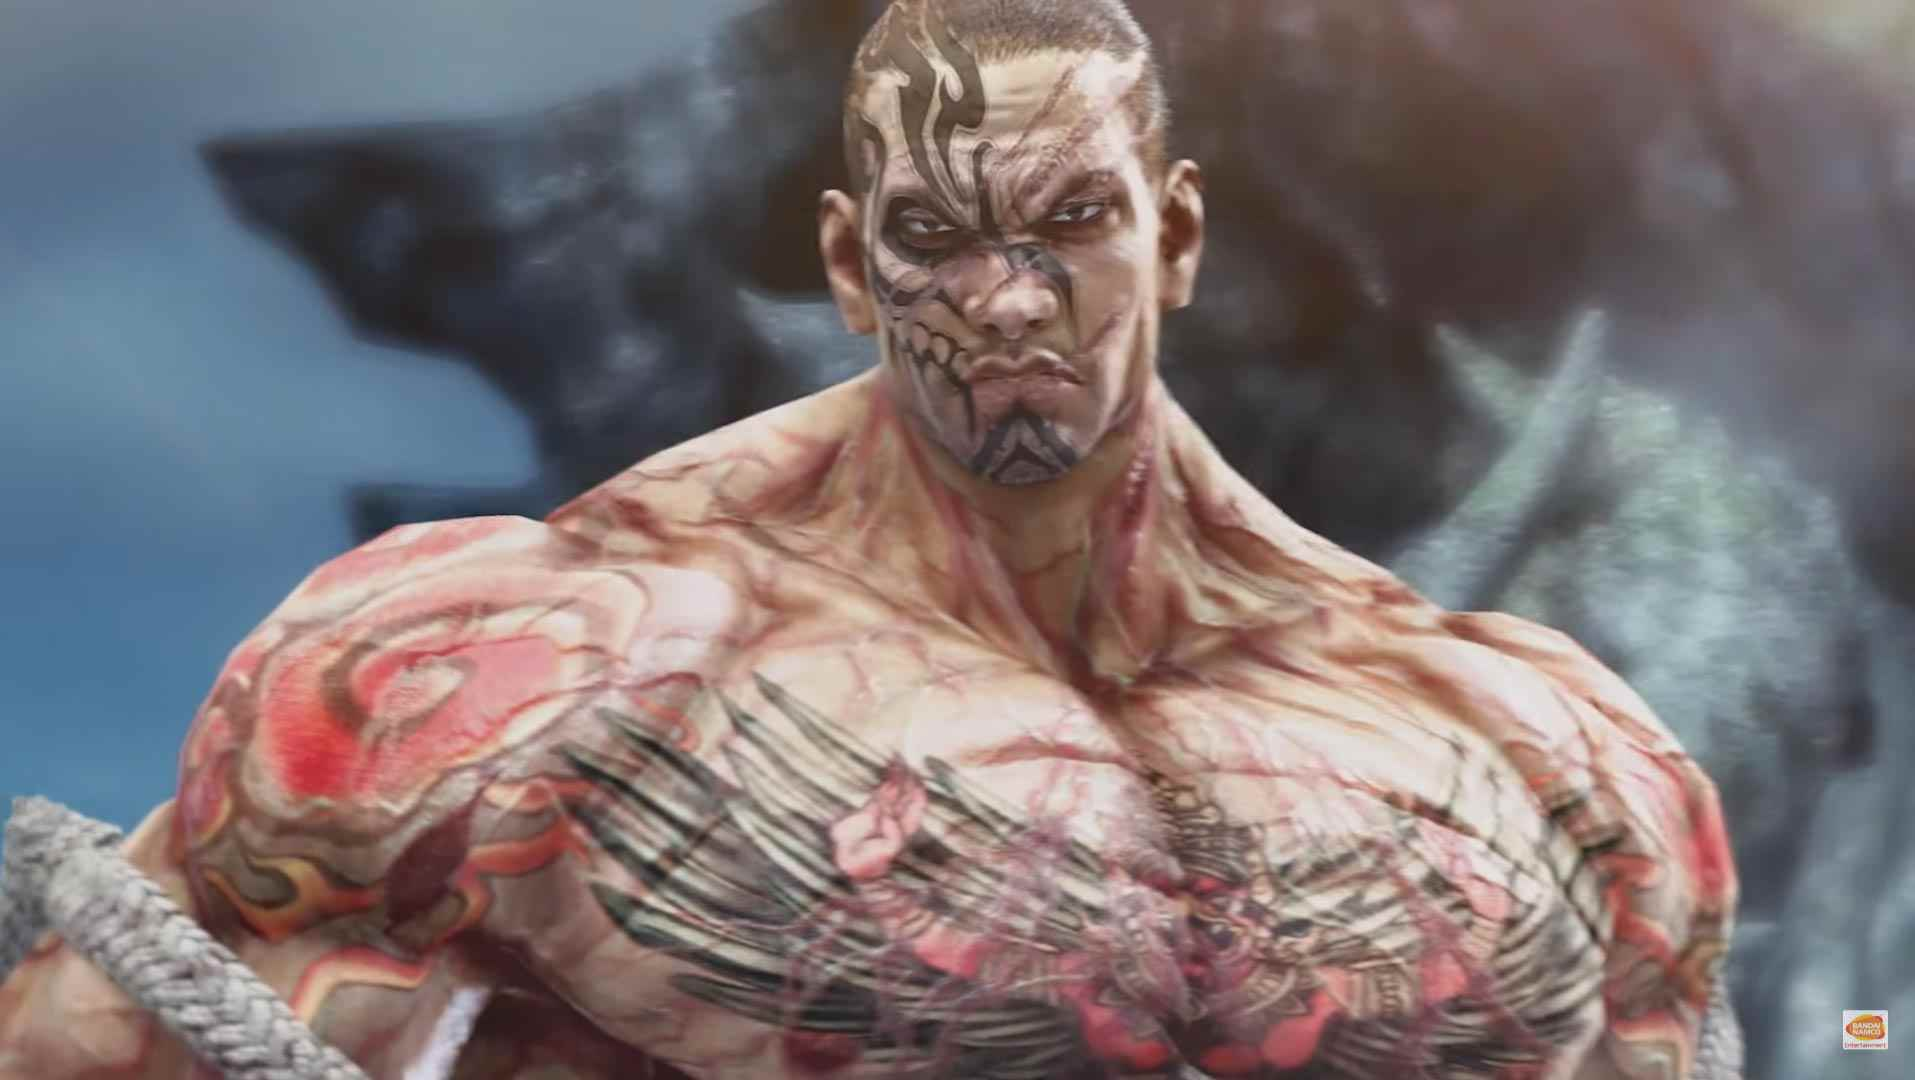 Fahkumram to join Tekken 7 on March 24